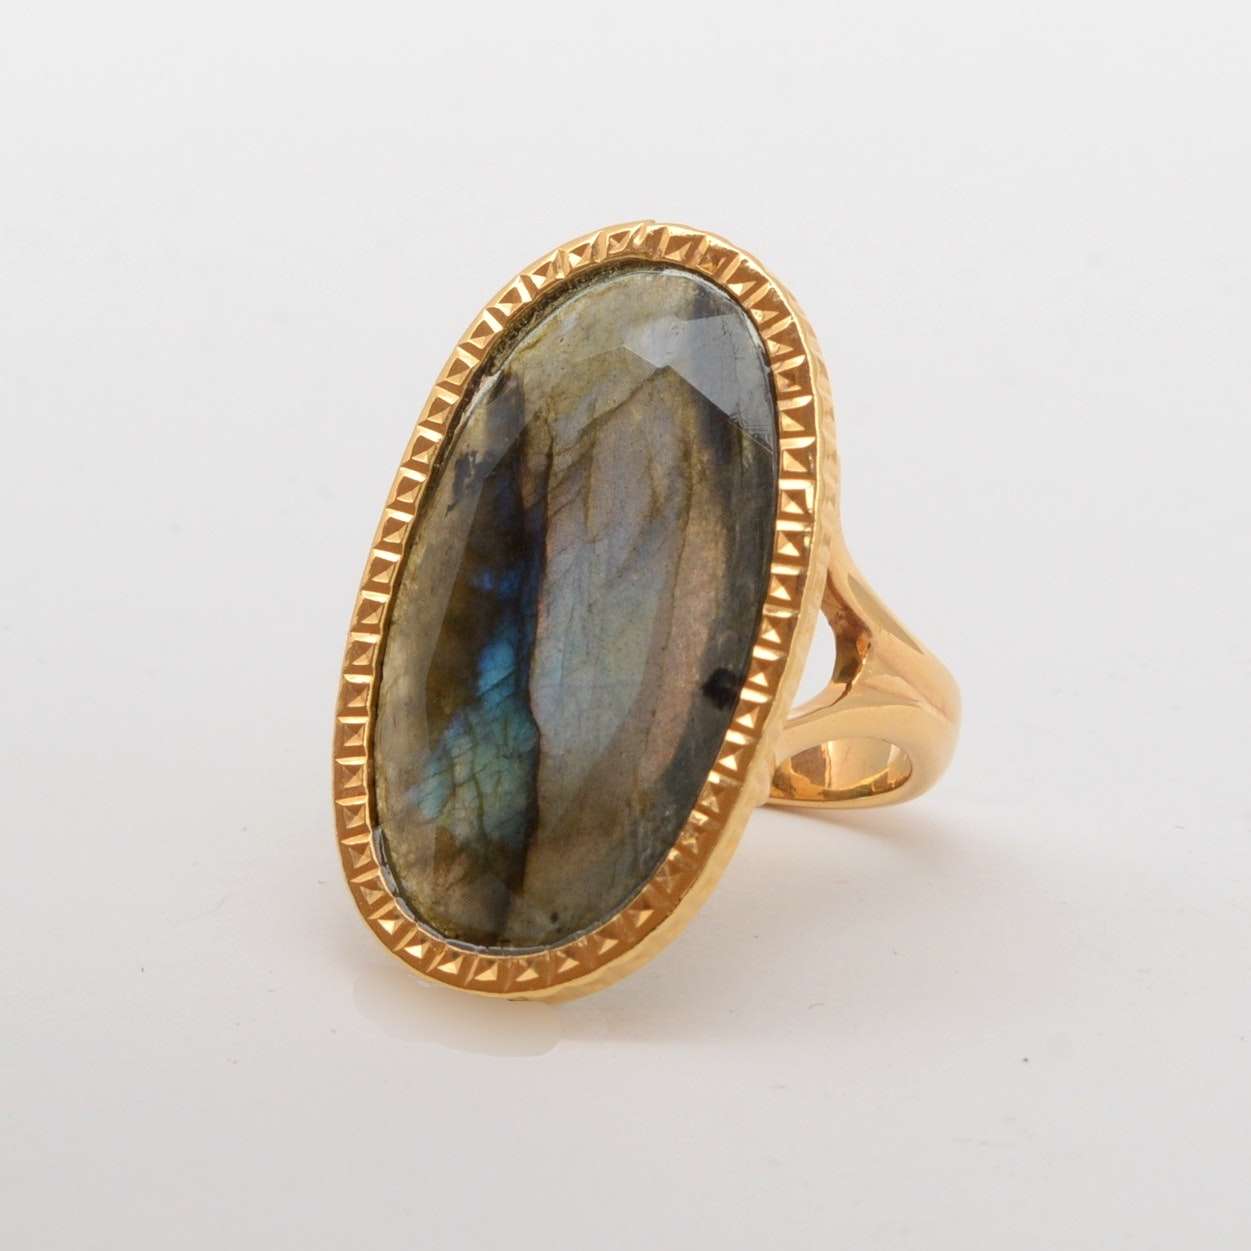 Milor 14K Yellow Gold Ladies Ring with Labradorite Center Stone